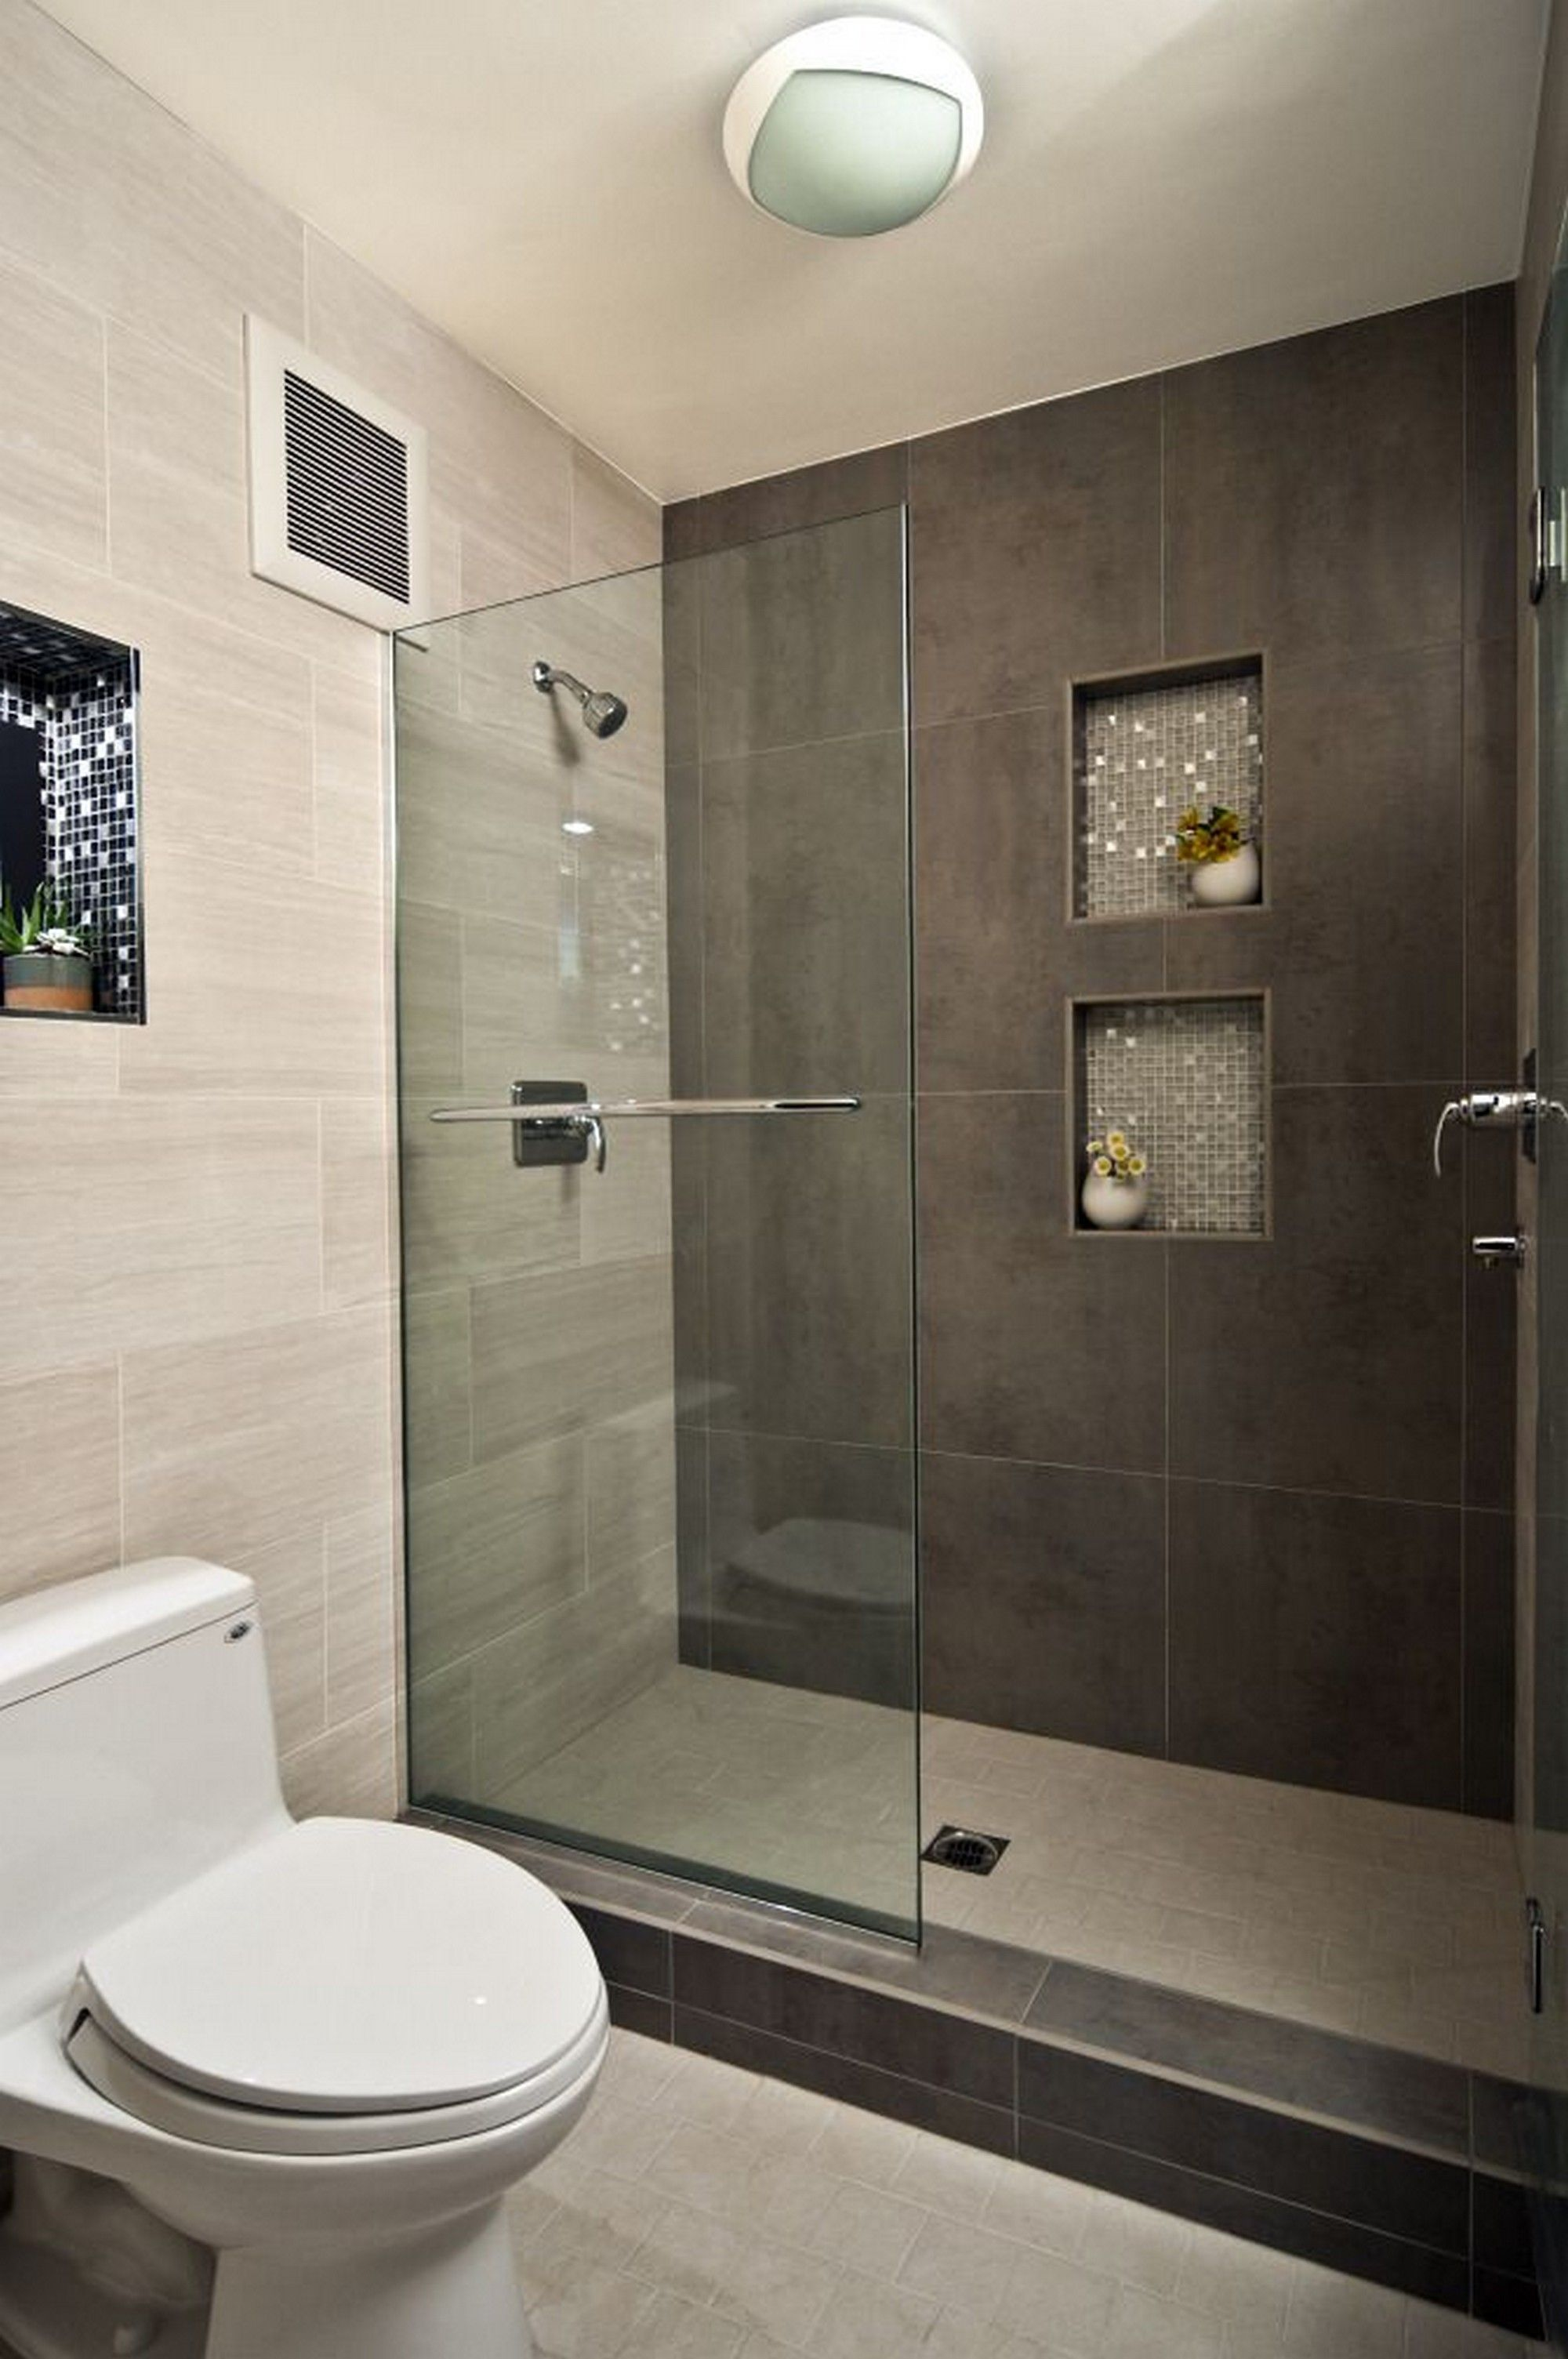 Modern Bathroom Design Ideas With Walk In Shower Interior Vogue Small Bathroom Remodel Bathroom Shower Design Bathroom Remodel Master